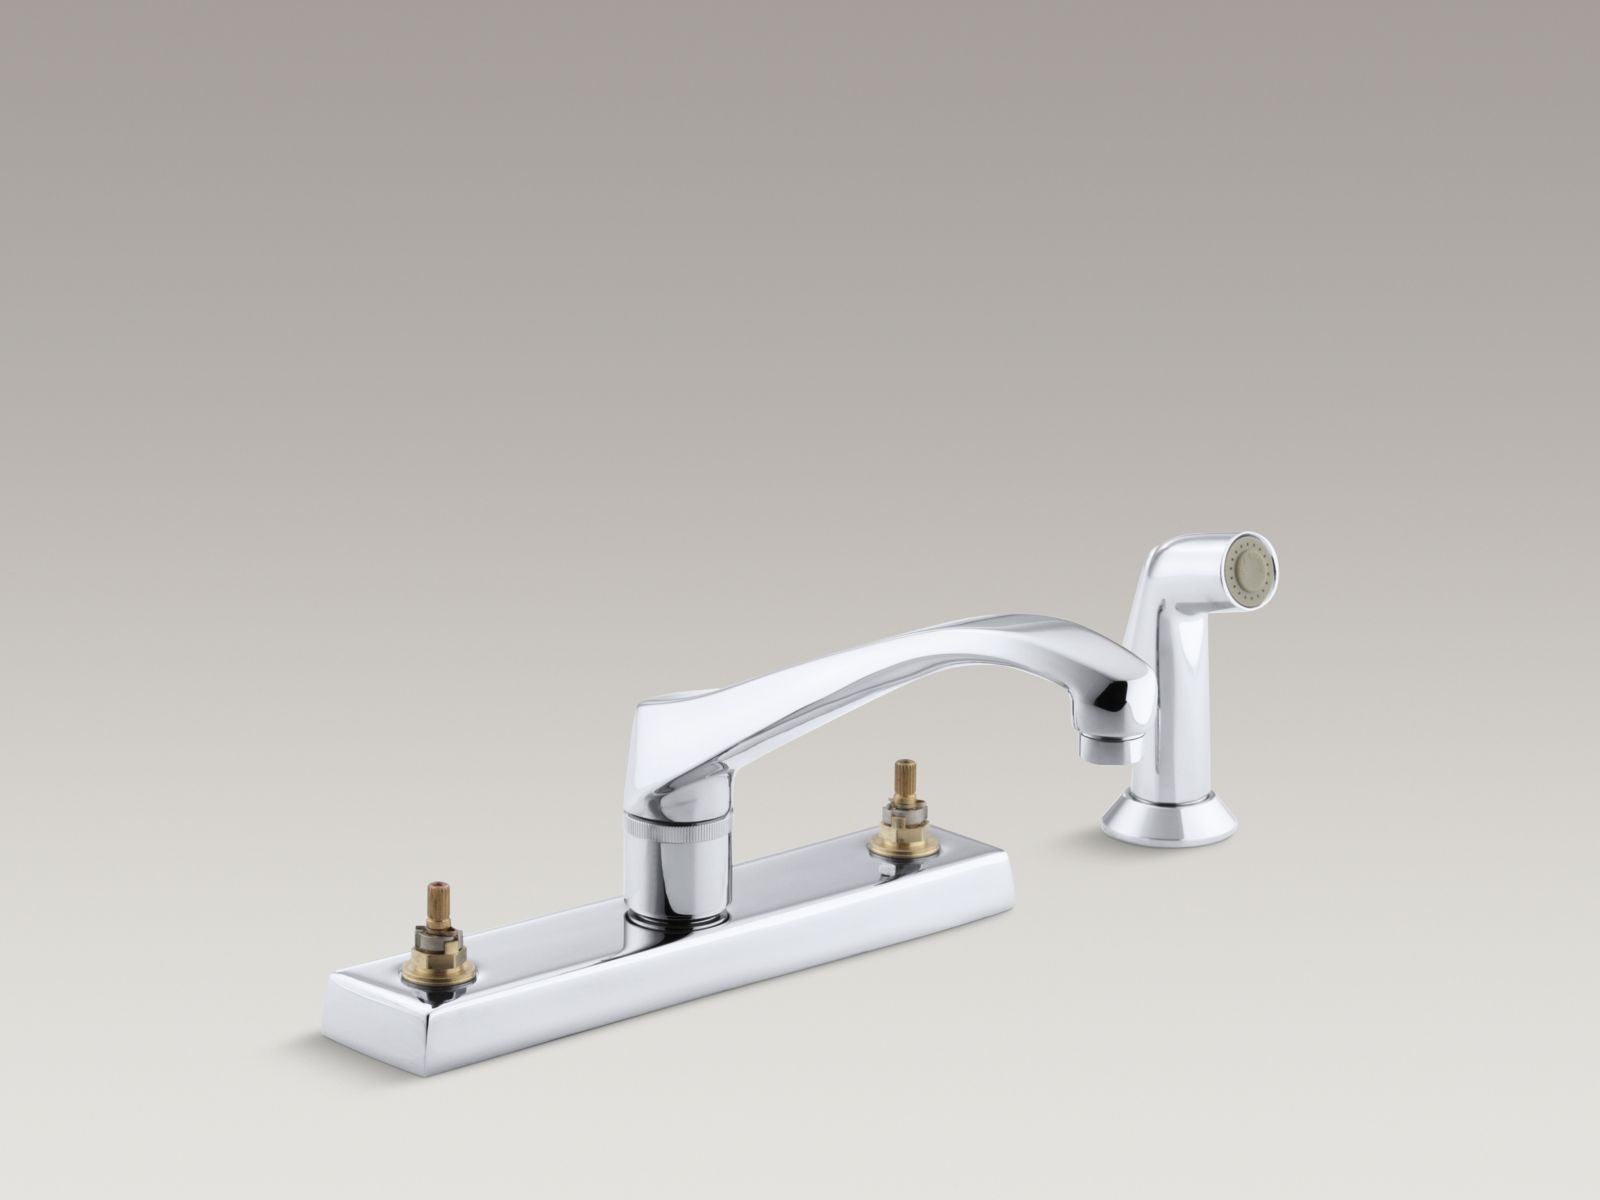 """Kohler K-7827-K-CP Triton Widespread Handle-less Kitchen Faucet with 9"""" Low-arc Spout and Sidespray Polished Chrome"""